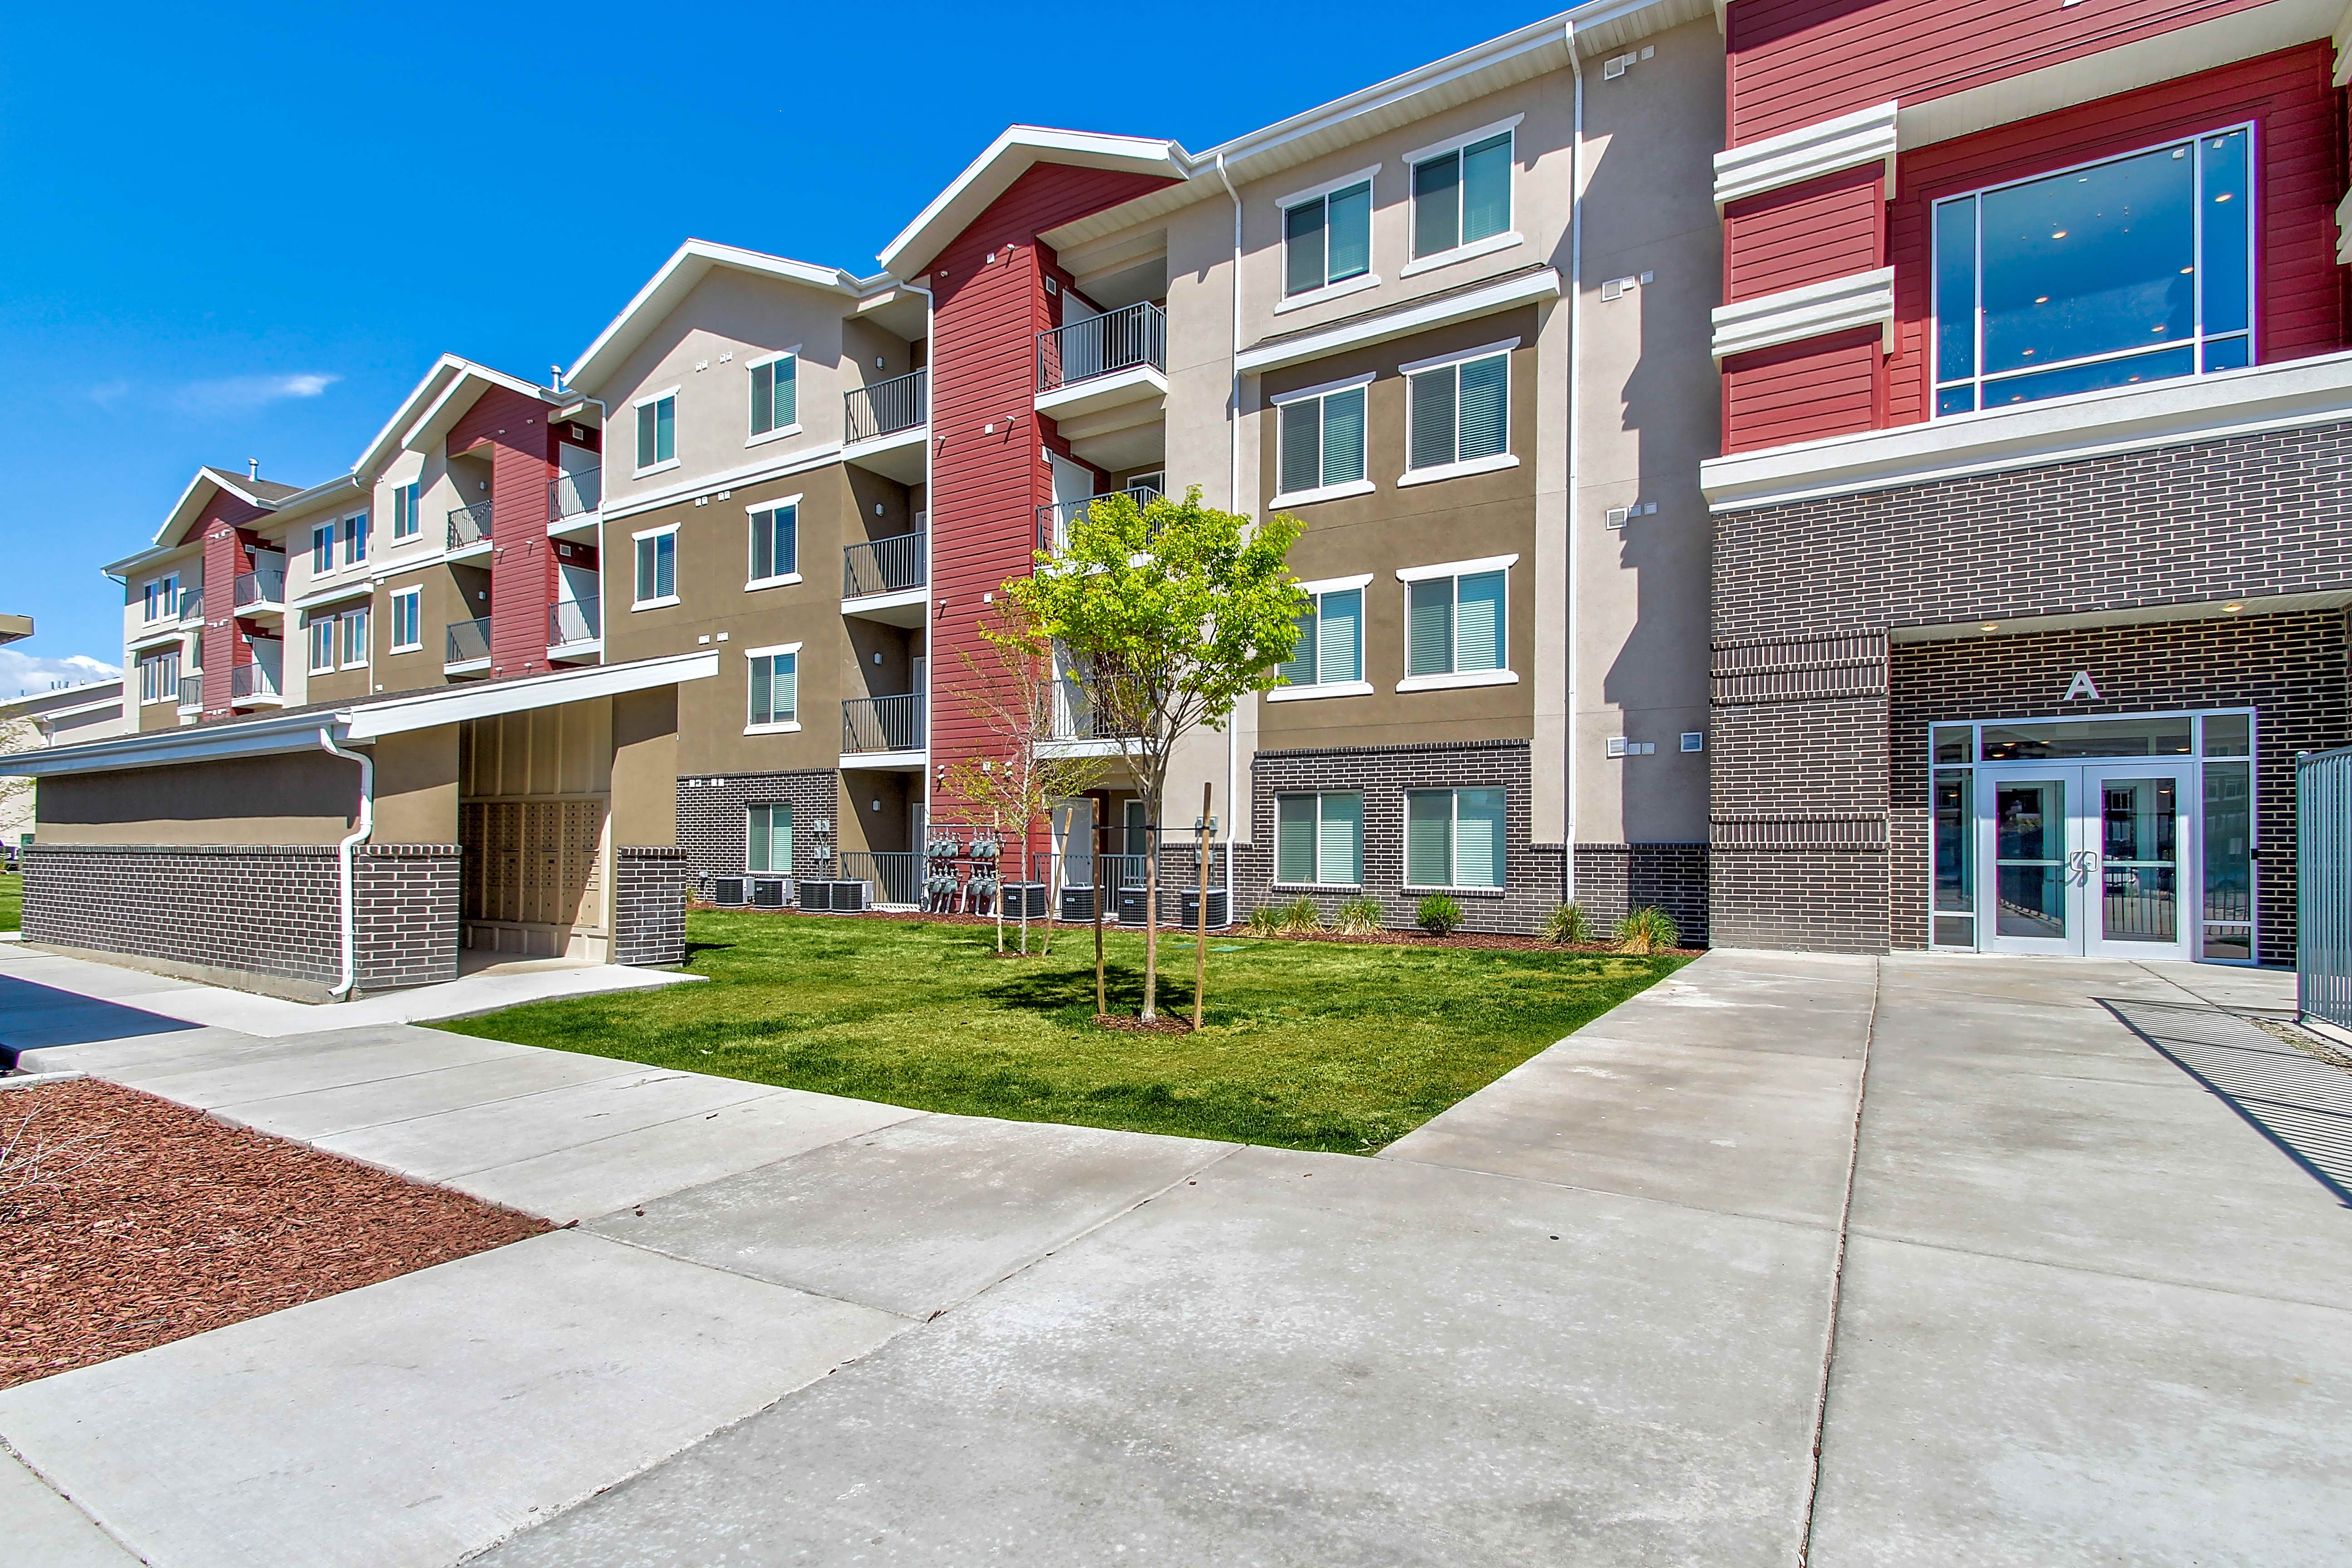 Apartments Near UVU Mill Point Apartments for Utah Valley University Students in Orem, UT